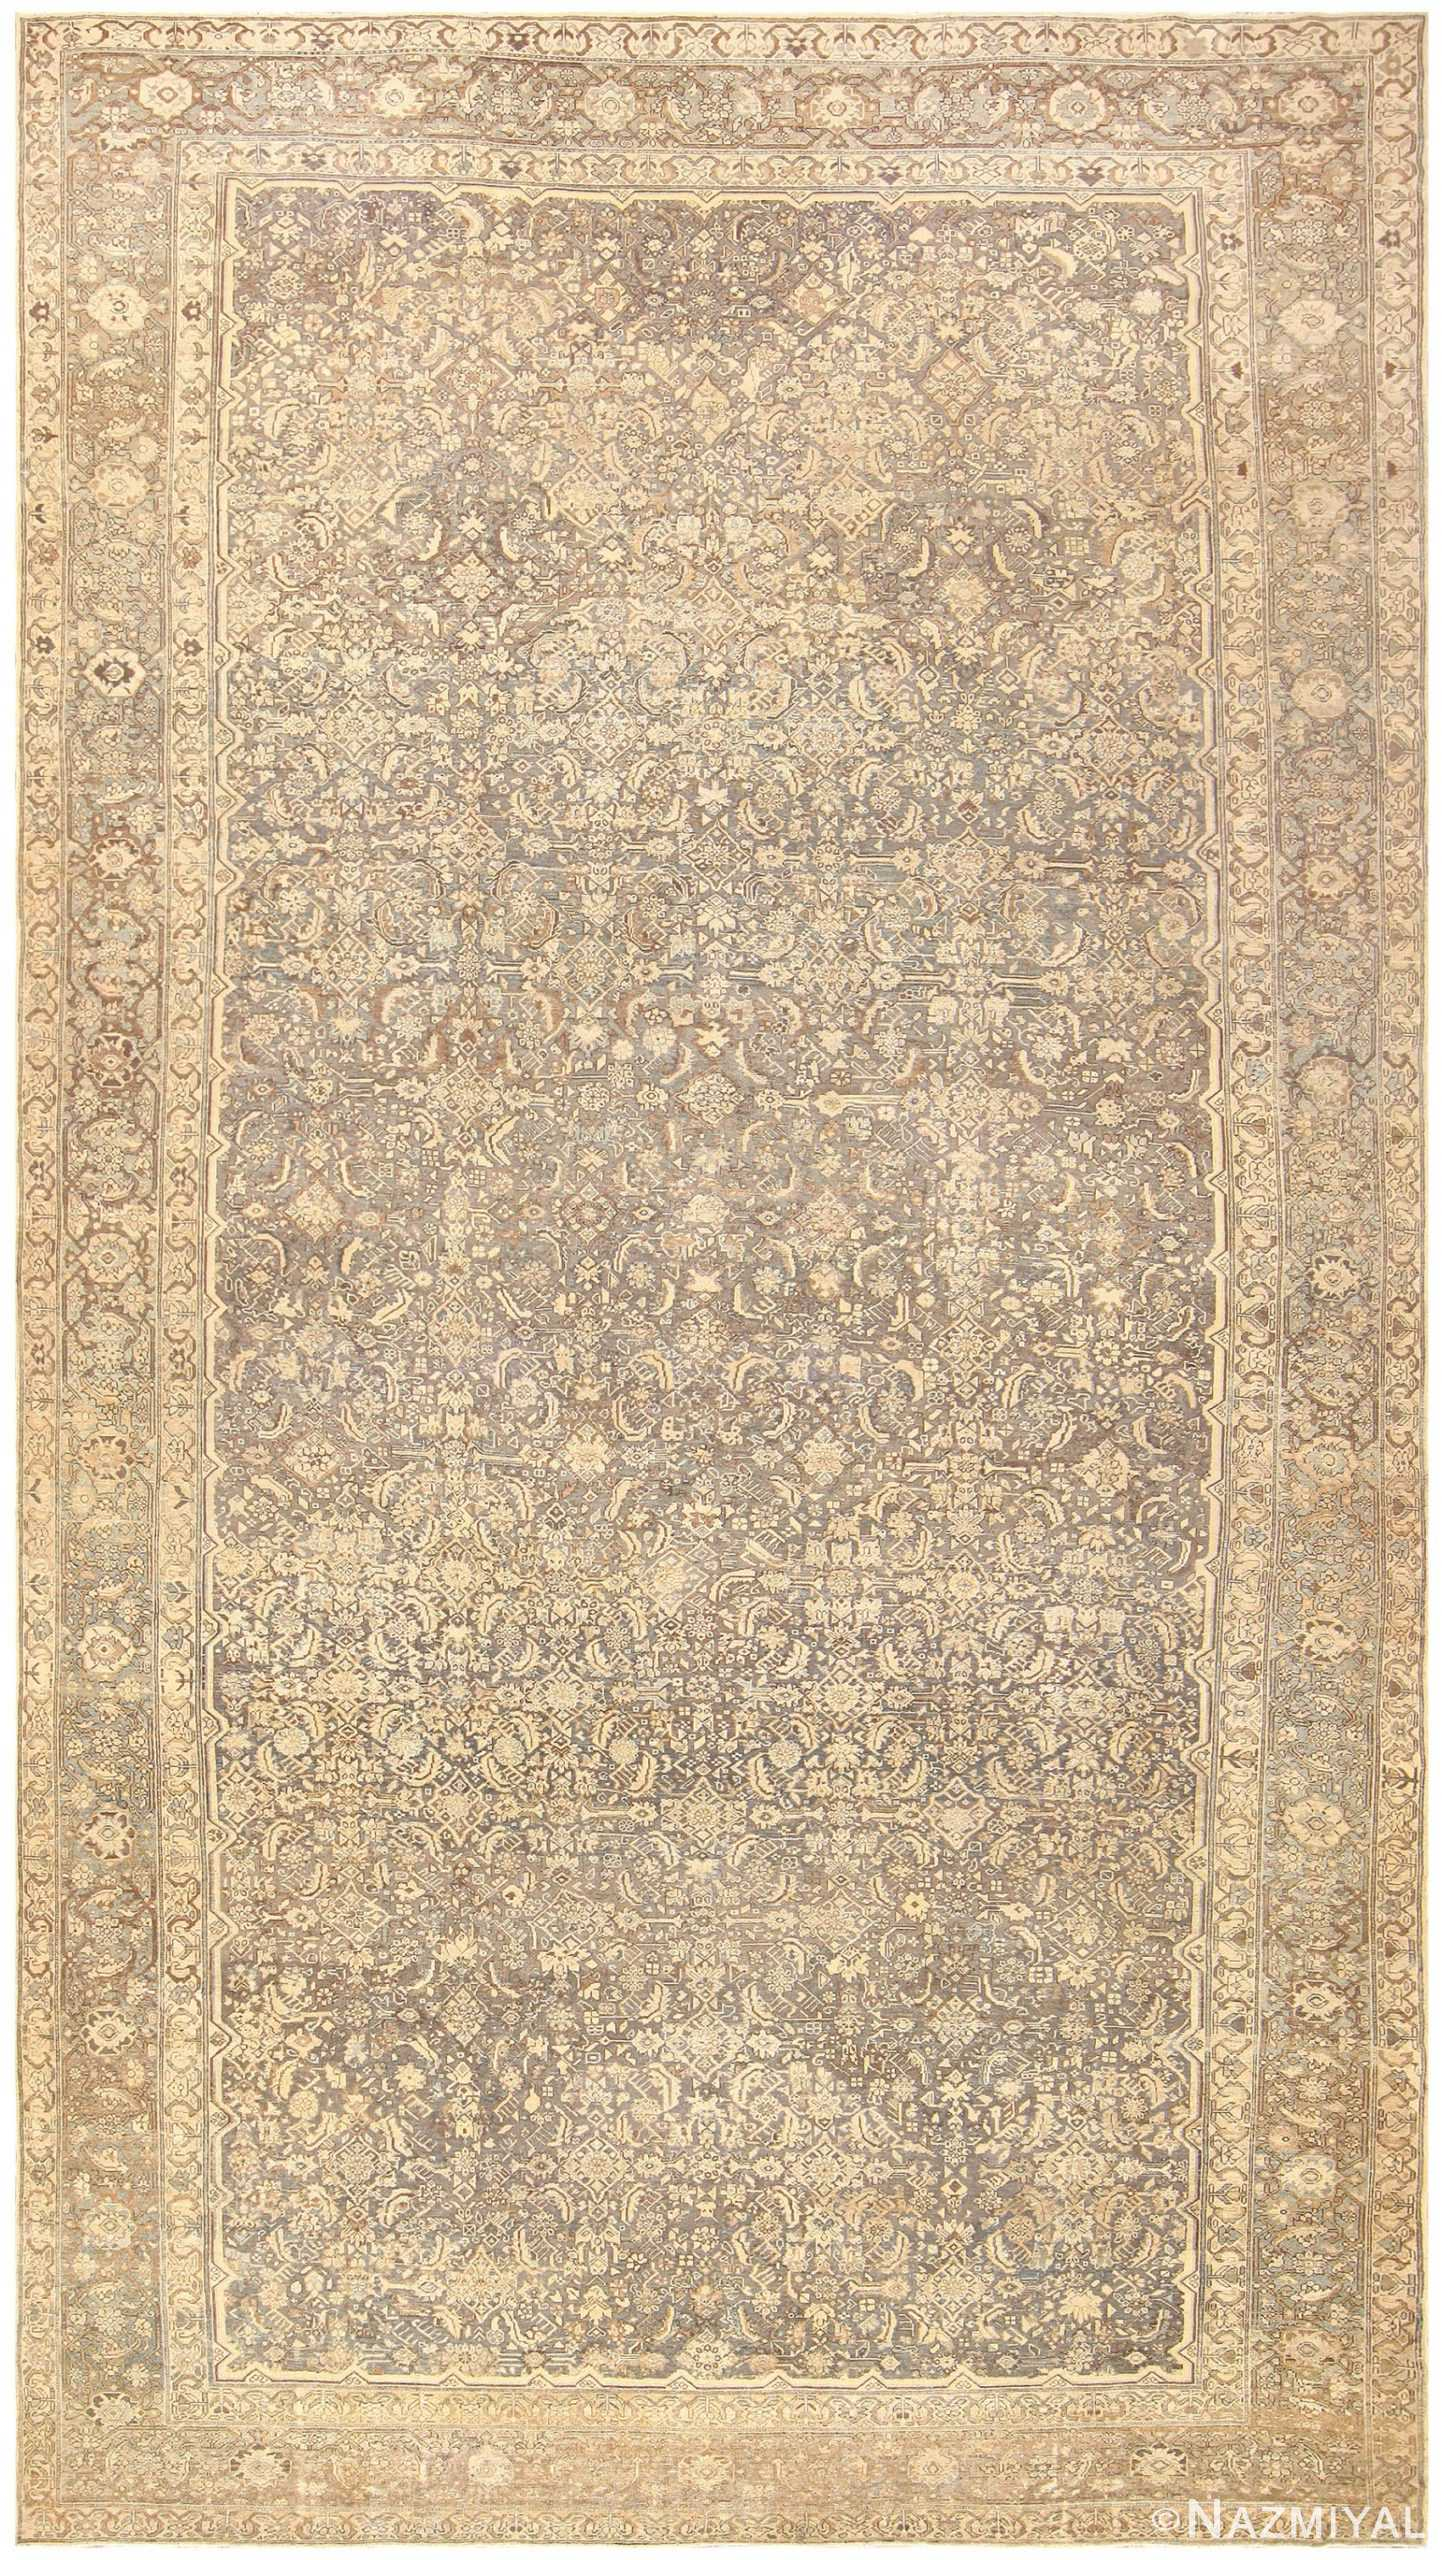 Persian Rugs Antique Persian Iranian Rugs For Sale By